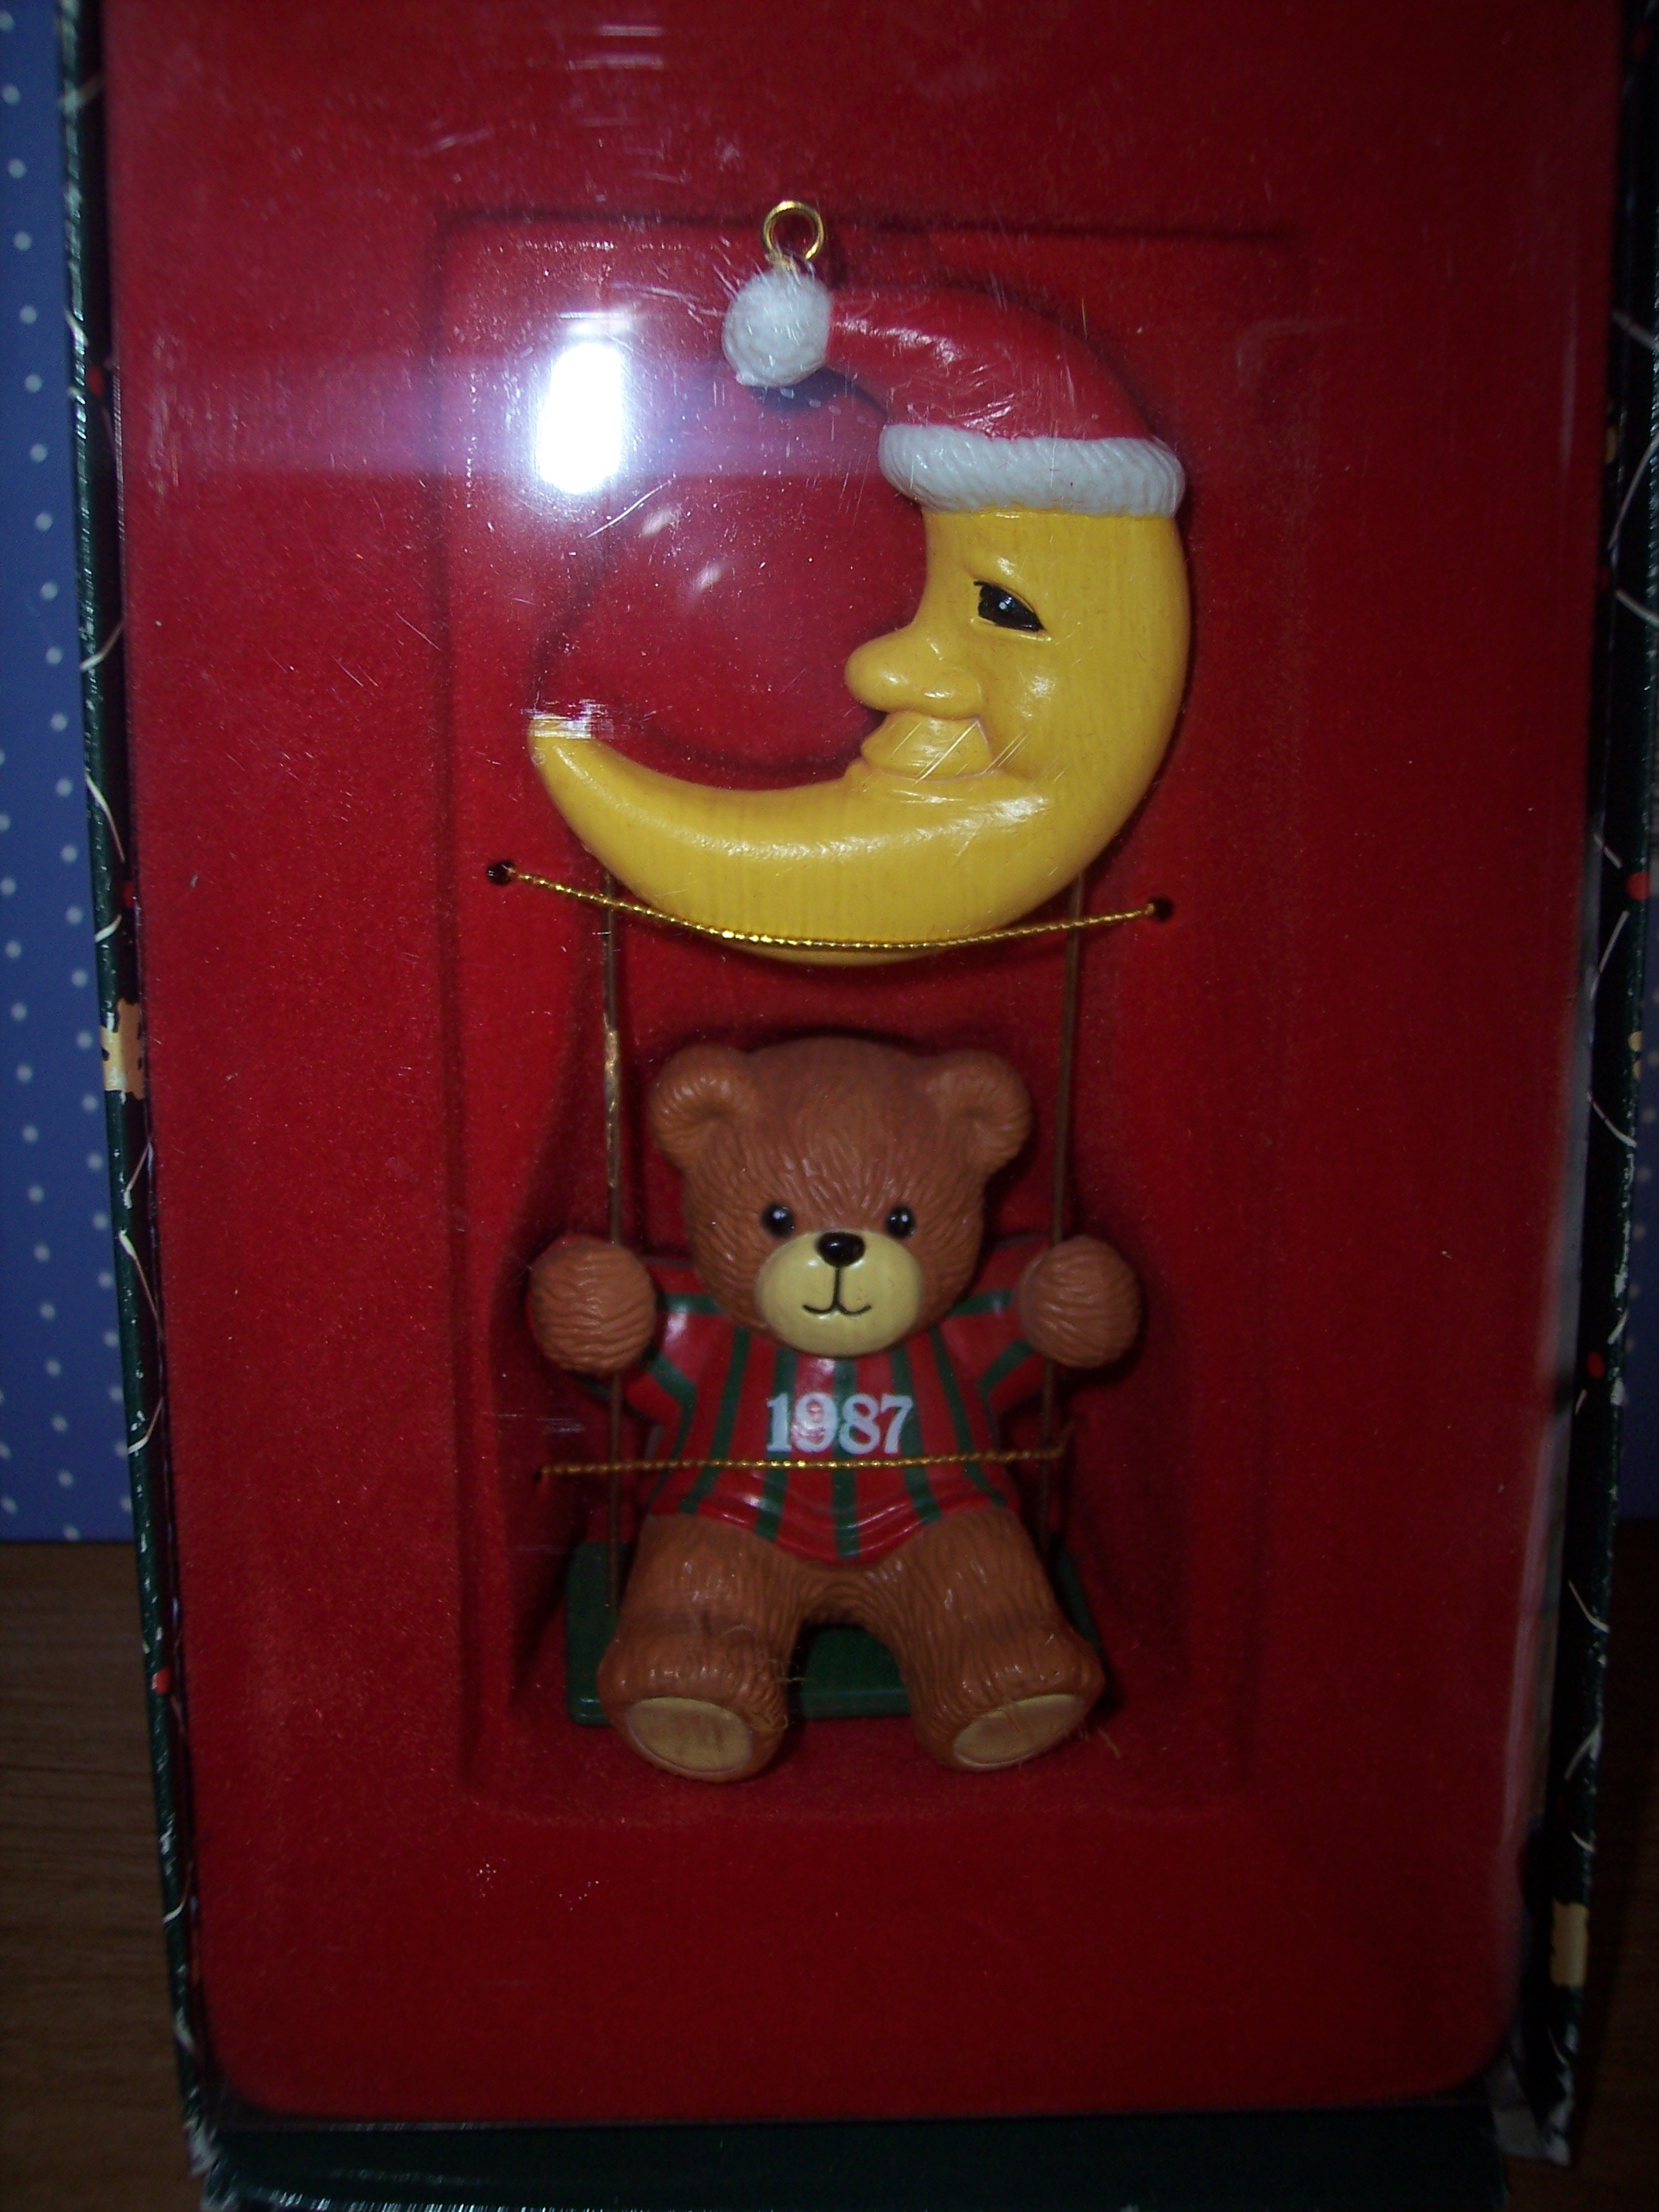 1987 Boy on Swing Ornament H4-2-1